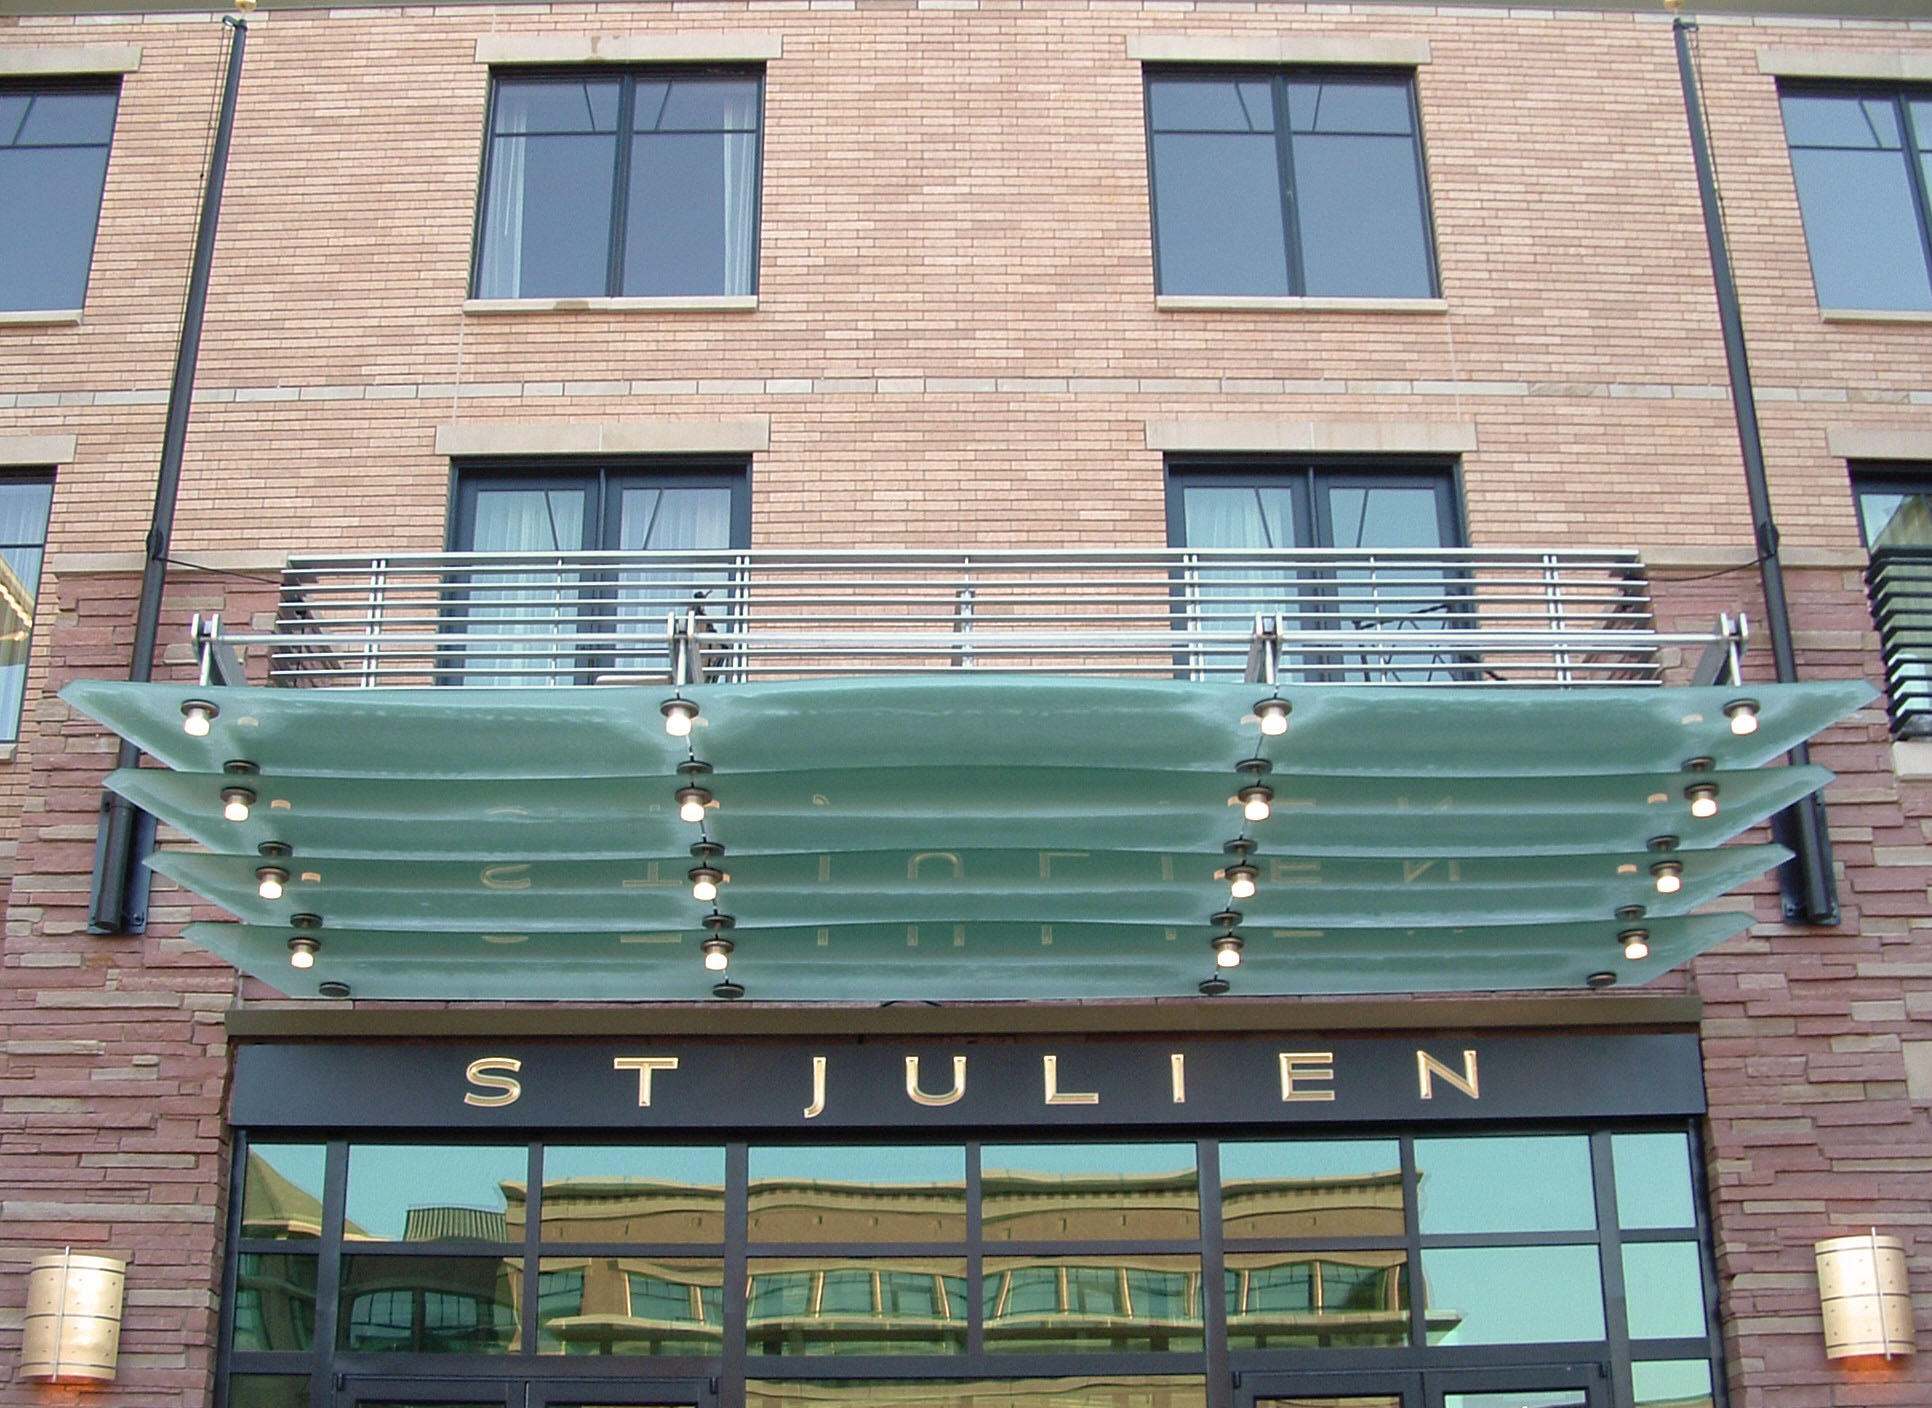 St Julien Hotel – Boulder CO